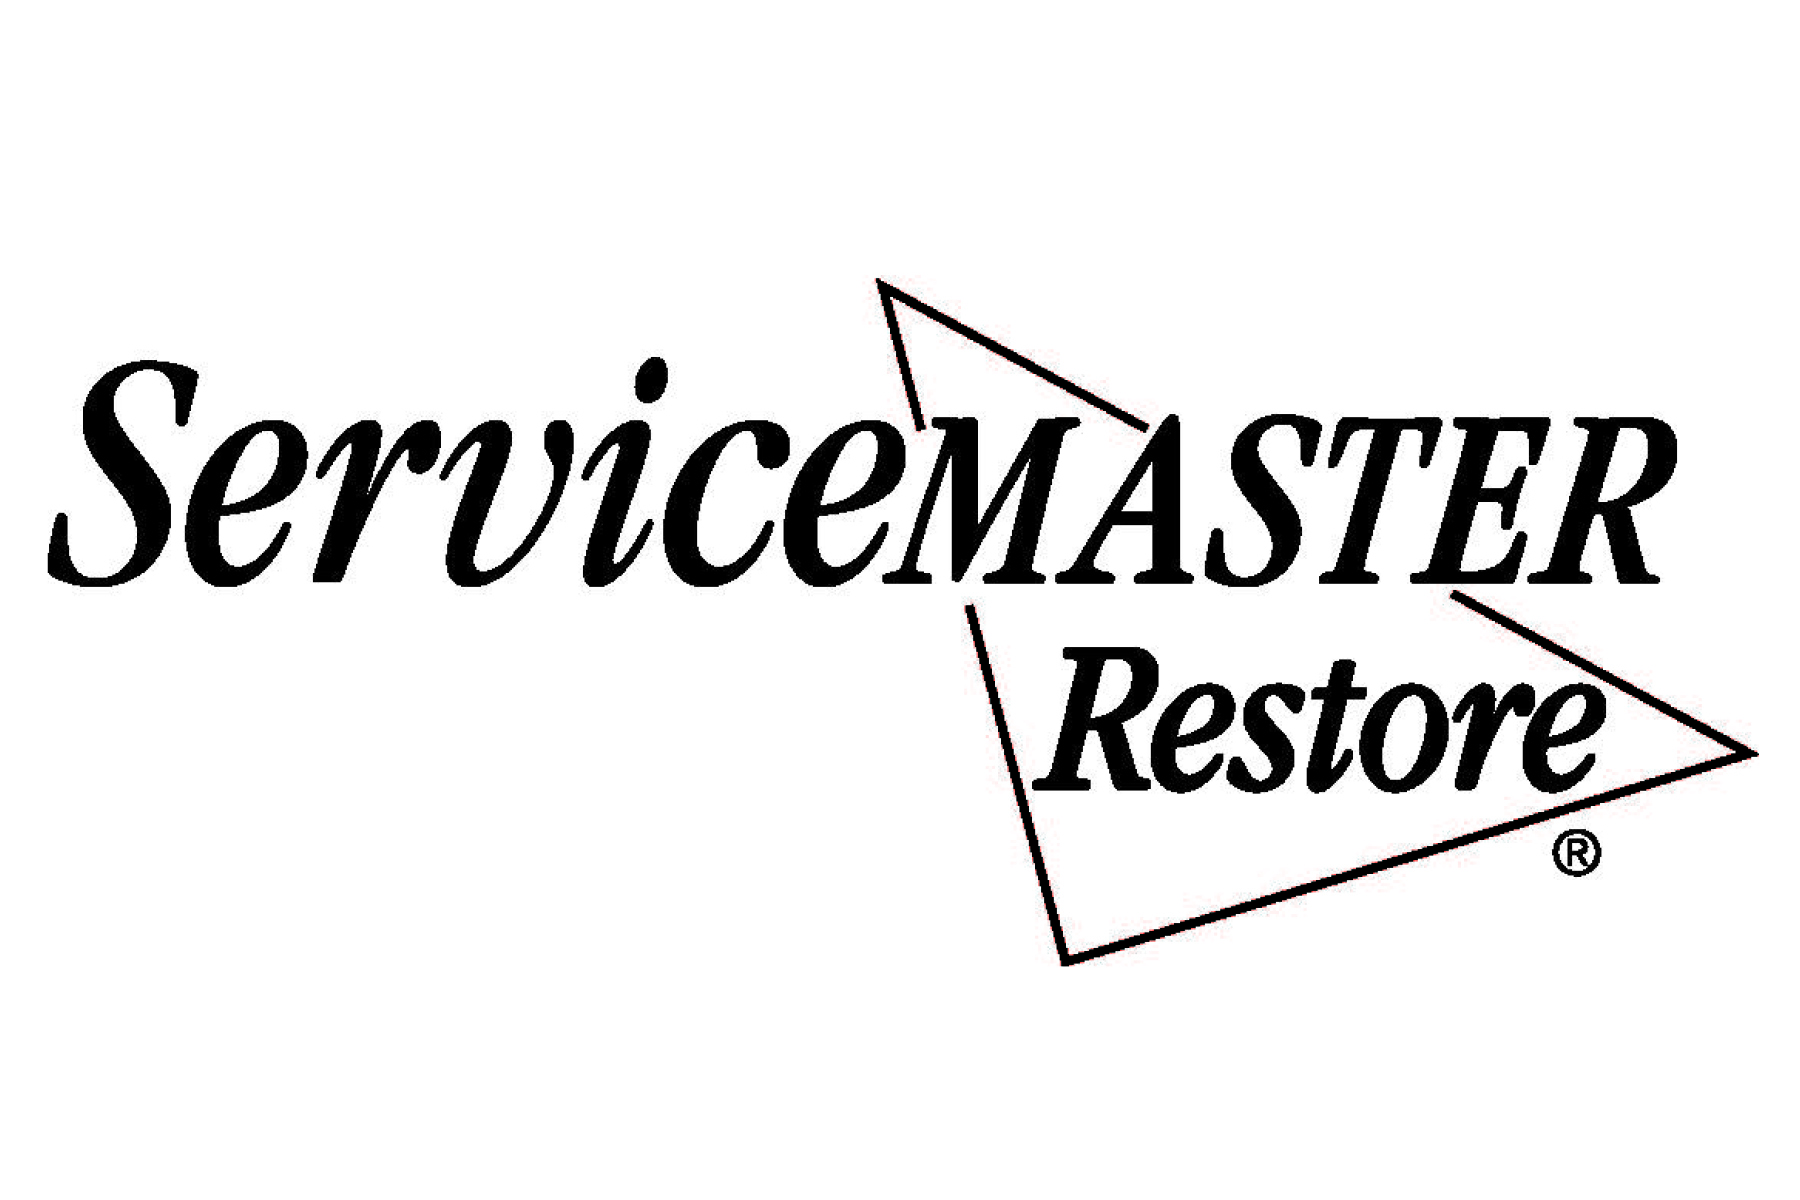 JARMON CONSTRUCTION CO. & SERVICE MASTER - CONTSTRUCTION | WATER, FIRE & MOLD RESTORATION127. N. Queen St • Kinston, NC 28501(252) 939-1238